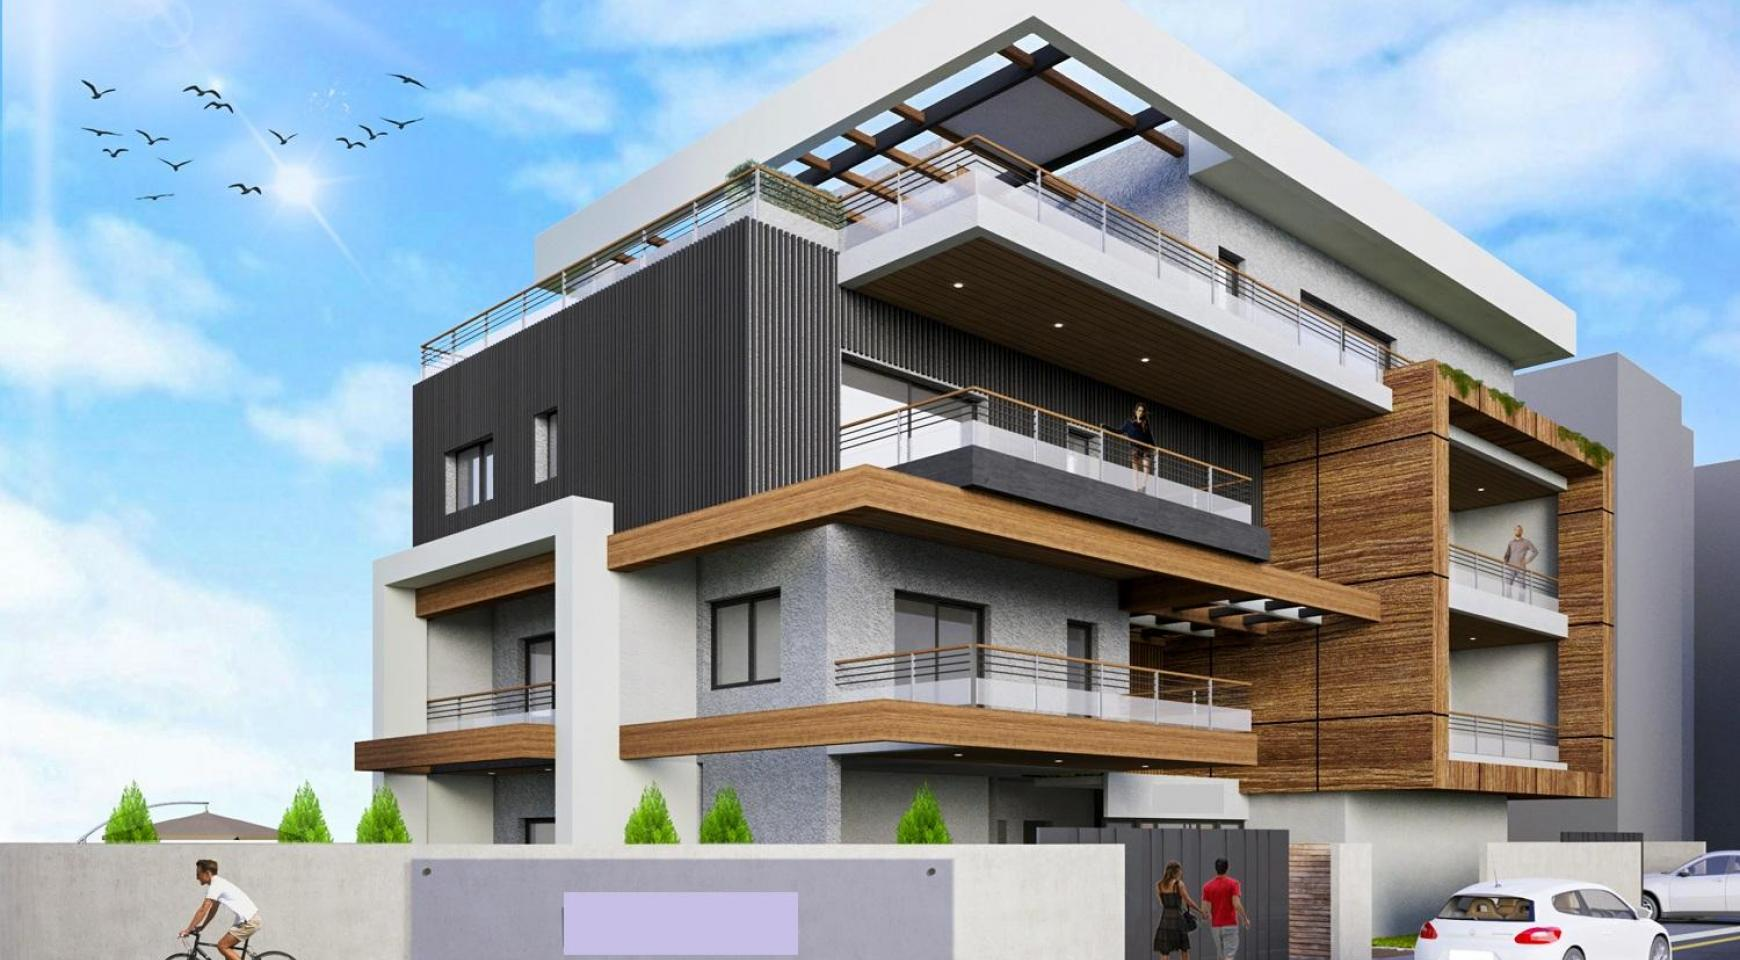 New 3 Bedroom Duplex Apartment in a Modern Building in Columbia Area - 3